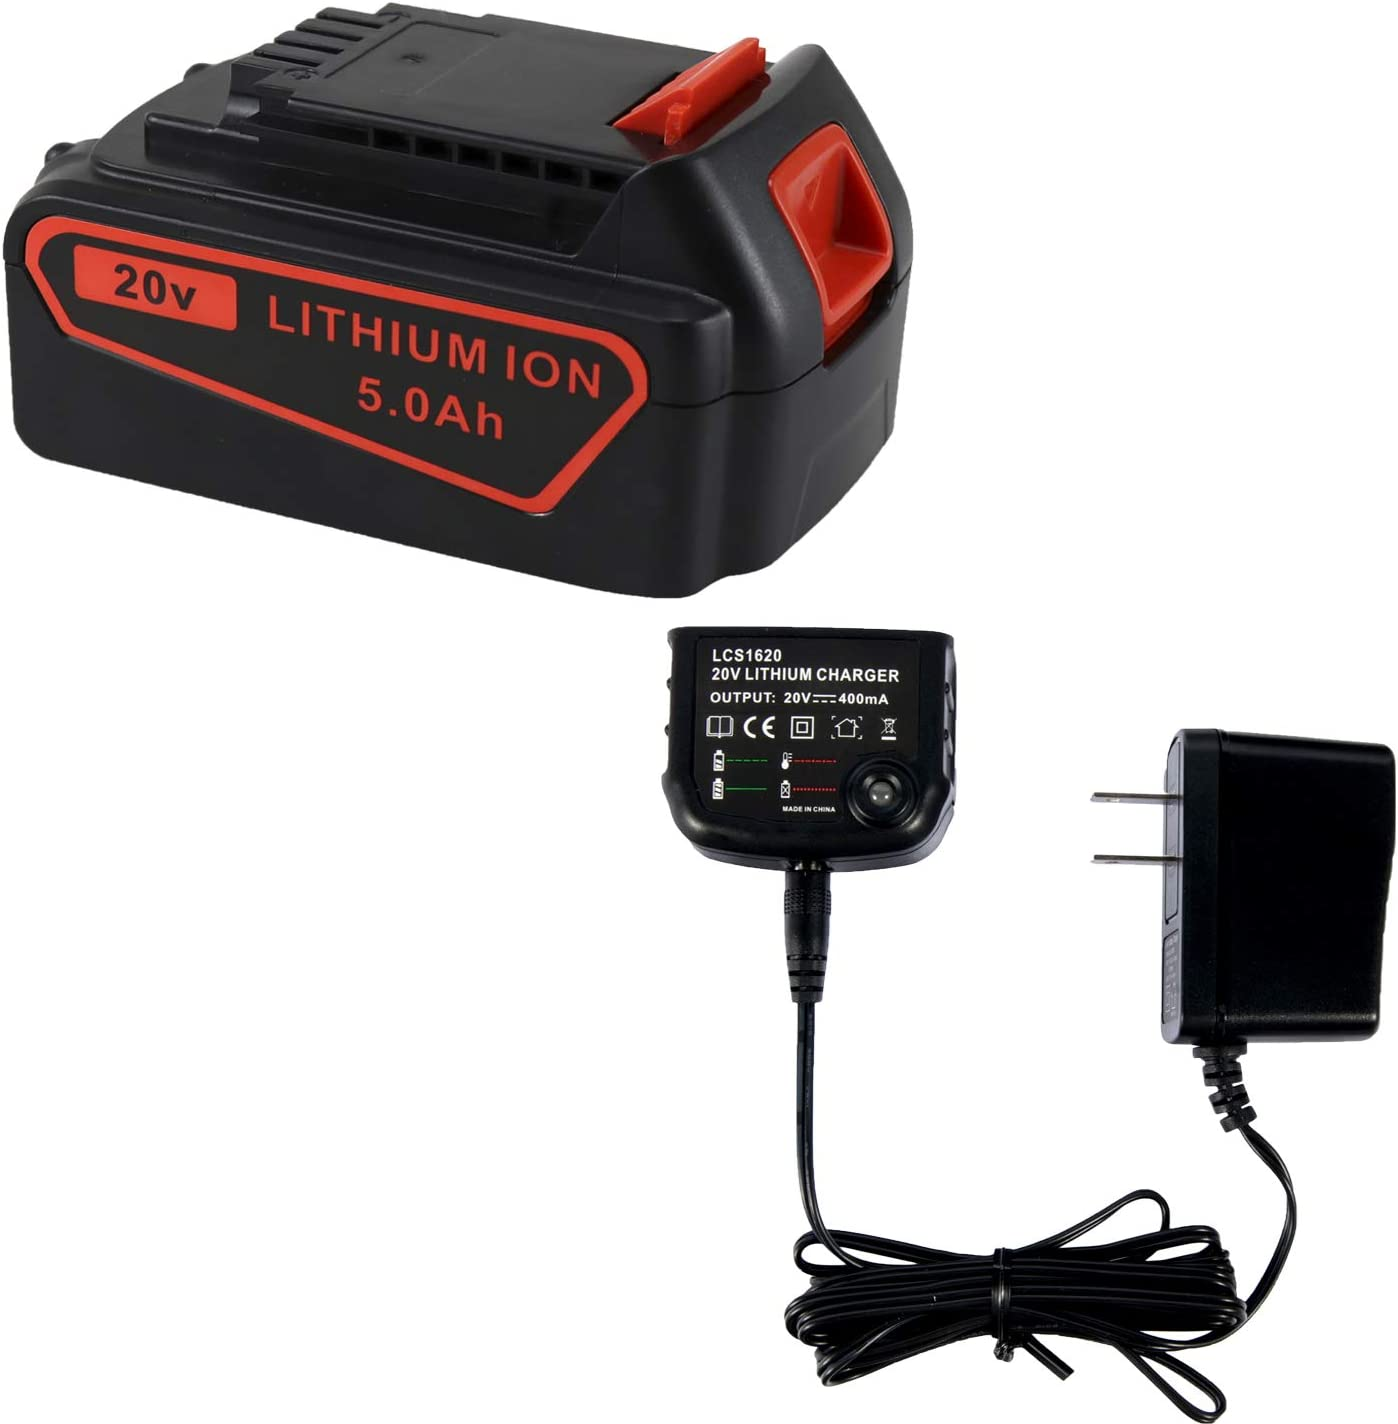 Cell9102 20V Lithium Battery and Charger for Black and Decker 20V Battery LBXR20 BXR20-OPE LBXR2020 LBXR20 and LCS1620 Charger, Capacity Output 5.0Ah